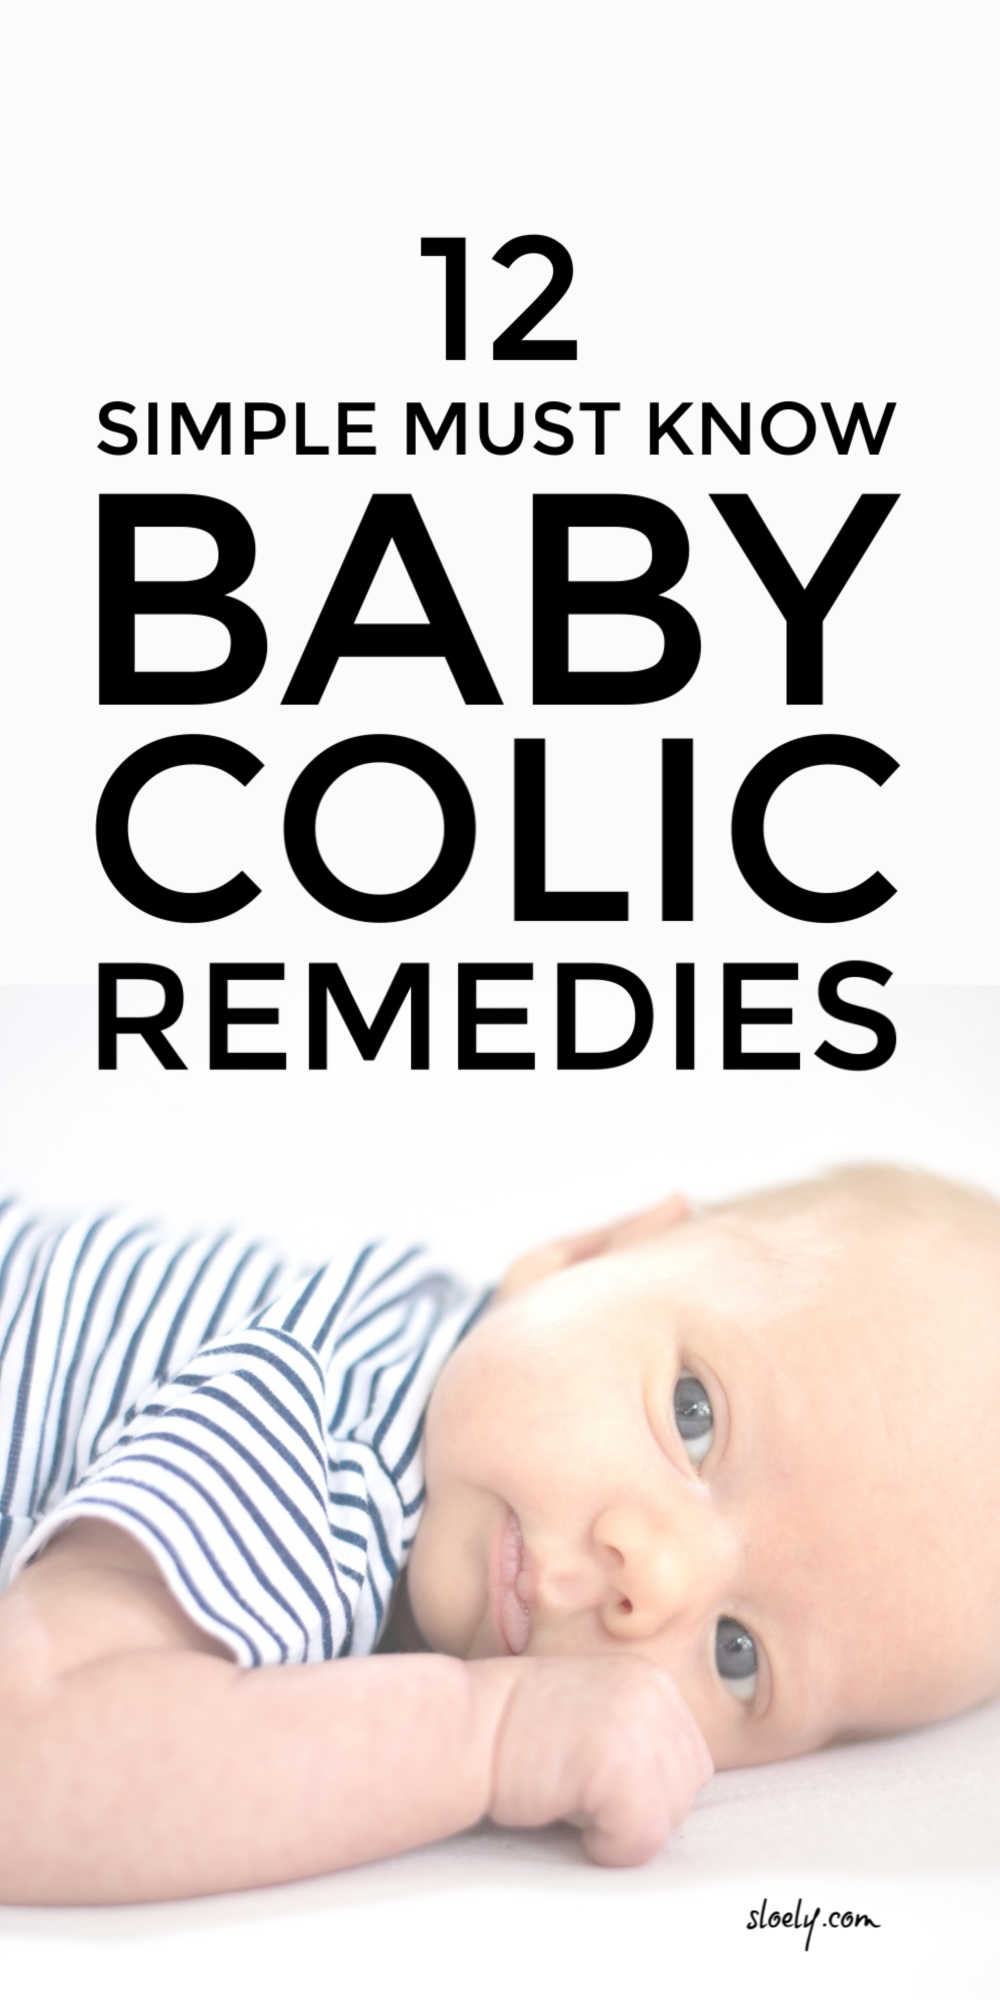 These simple natural remedies for baby colic will ease the symptoms of baby colic and gas much more effectively than lots of the crazy colic tips and baby colic products out there. They are effective for both breastfed and bottle fed babies. #colicremedies #colic #babycolic #newborn #babyhealth #babyremedies